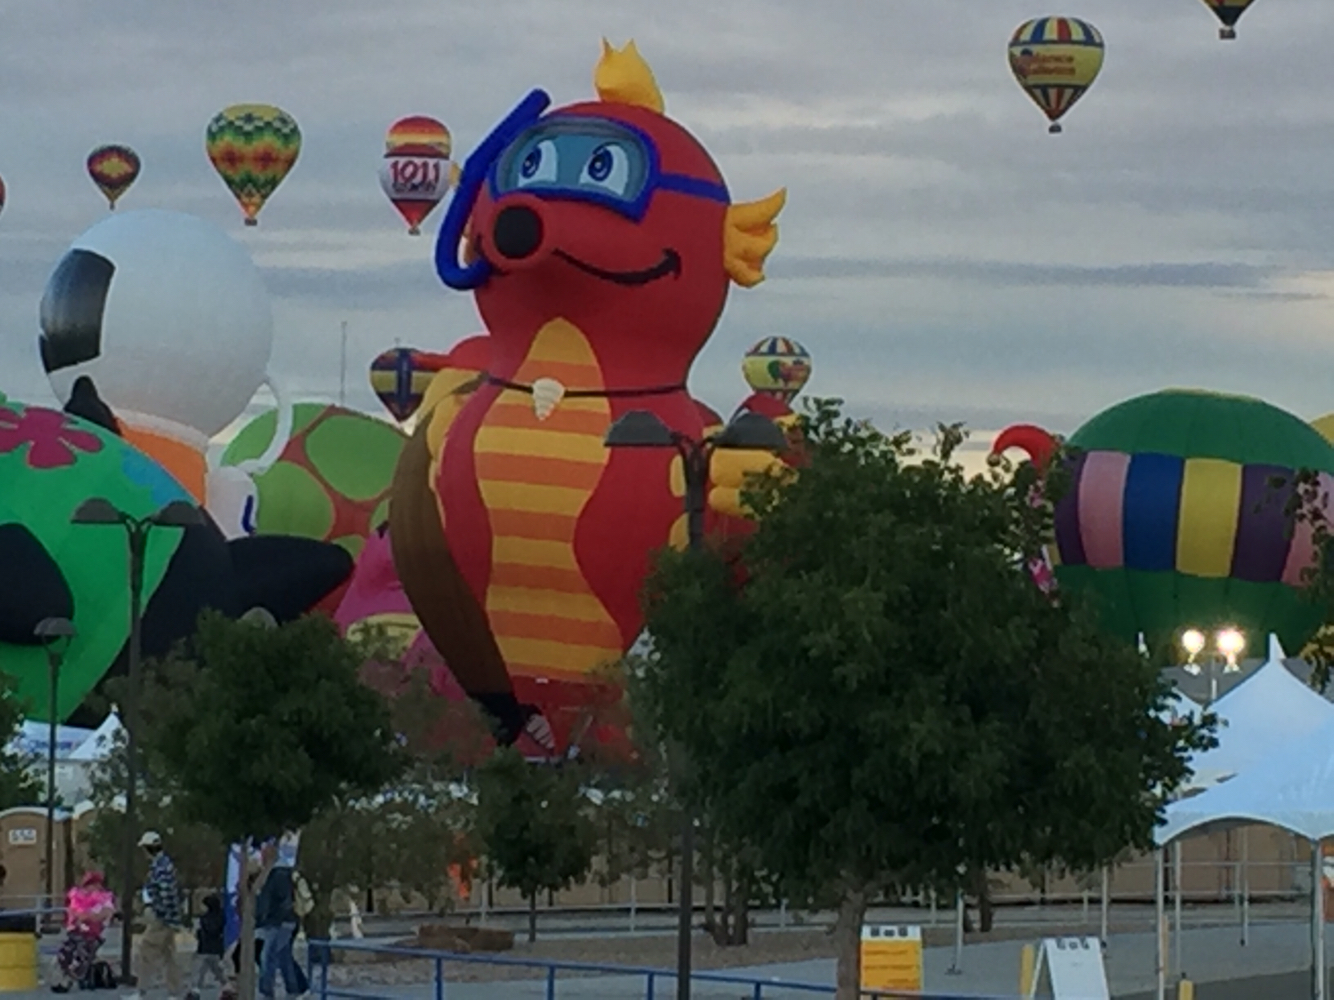 1000+ images about Albuquerque Balloon Fiesta on Pinterest.